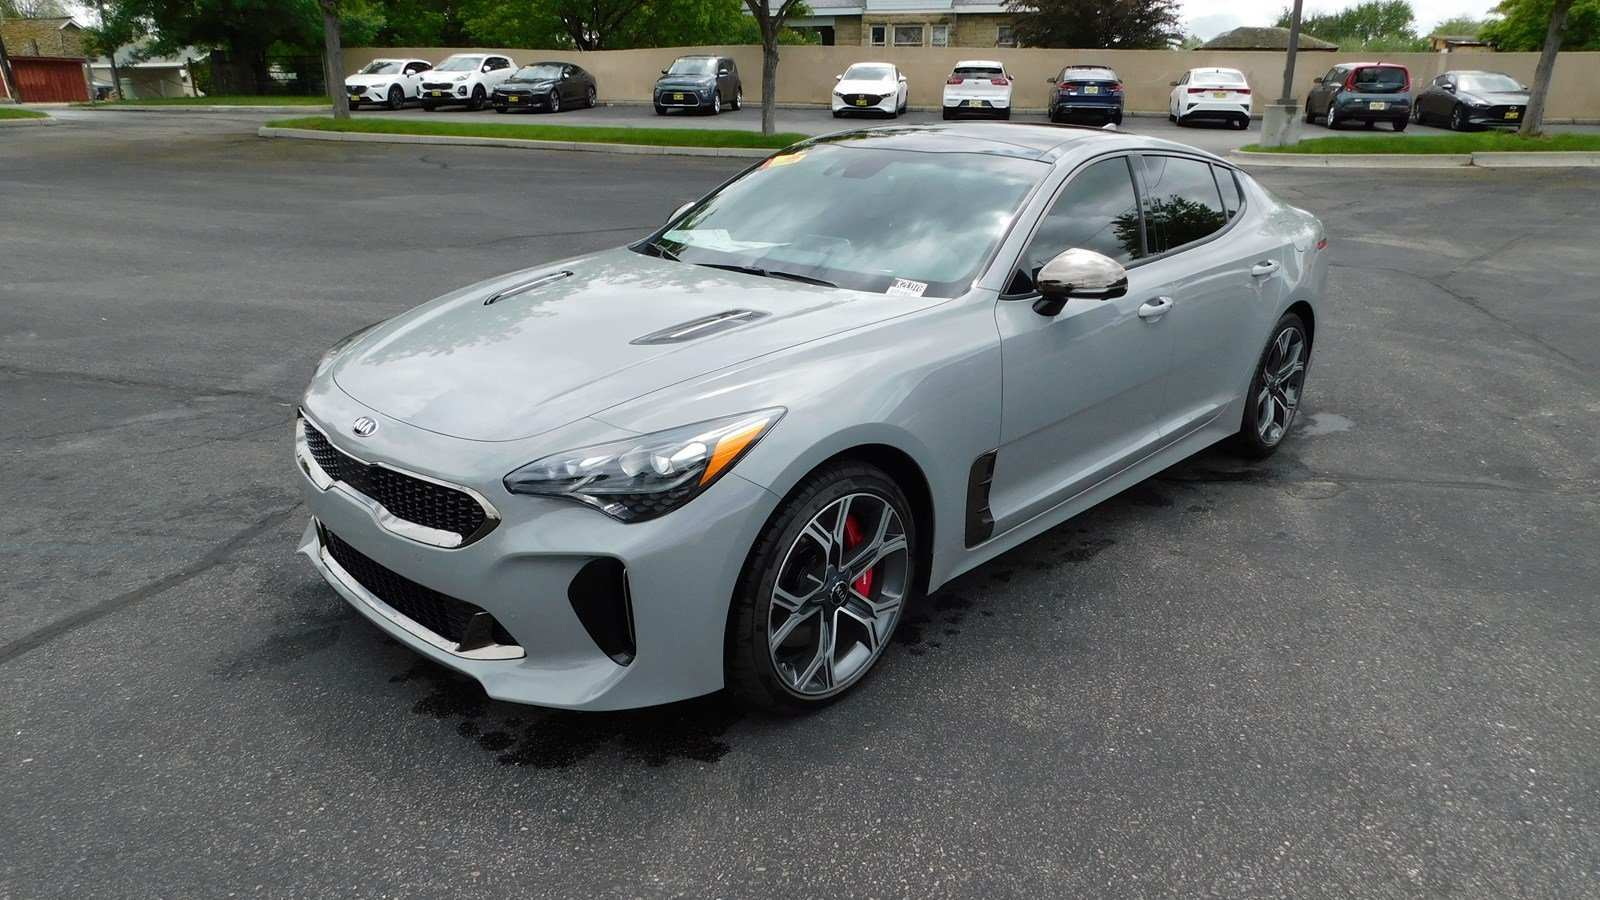 87 All New 2019 Kia Stinger Gt2 Release Date